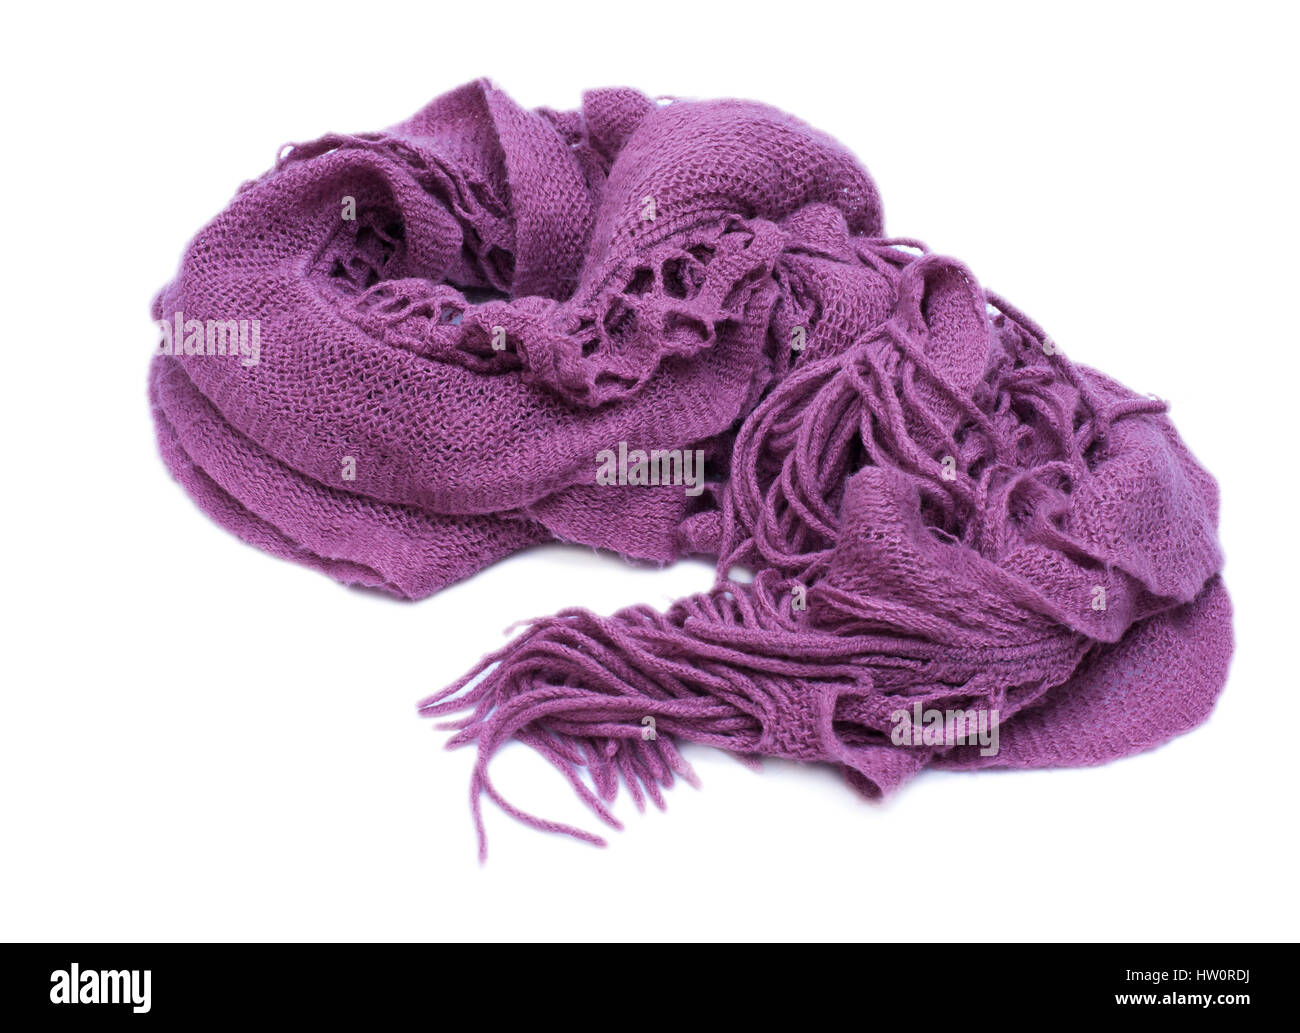 Violet knitted woolen scarf isolated on white background - Stock Image